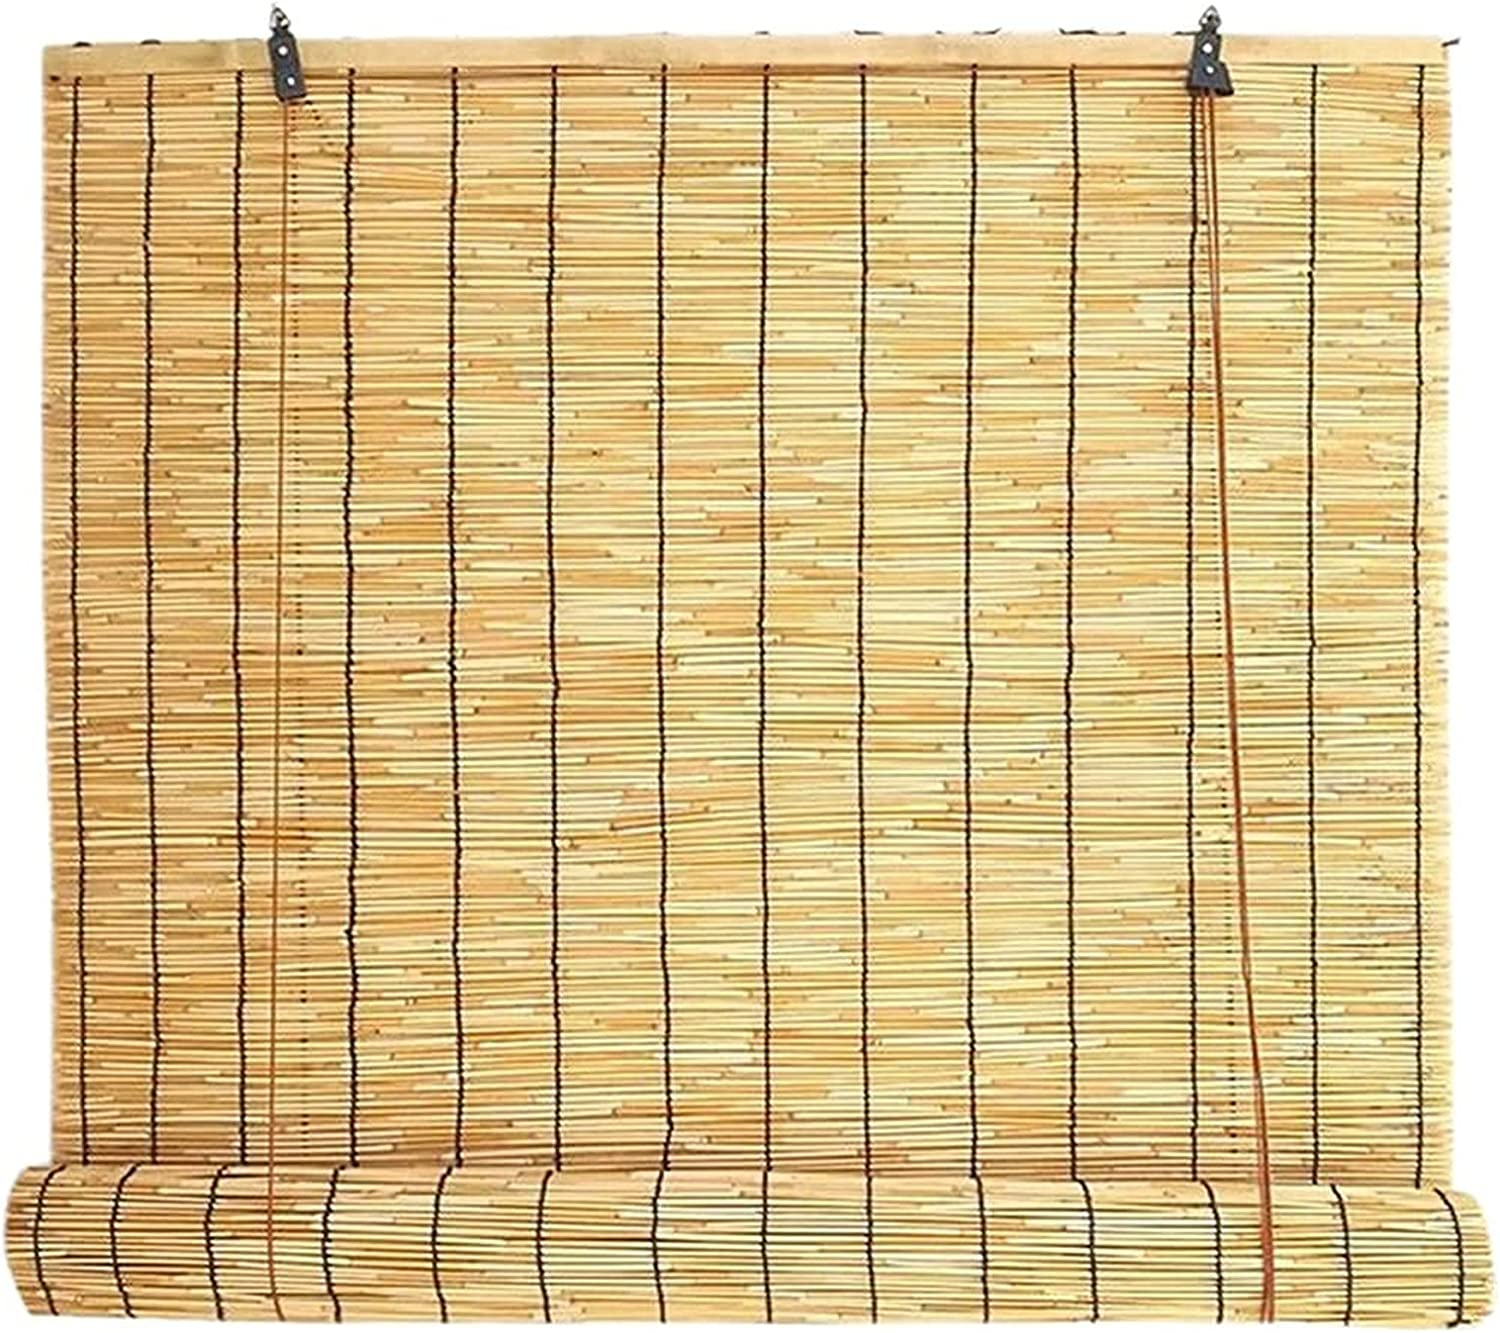 Limited time for free shipping DBXOKK Hand-Woven Natural Reed Curtains Blinds Roller wit OFFicial Bamboo